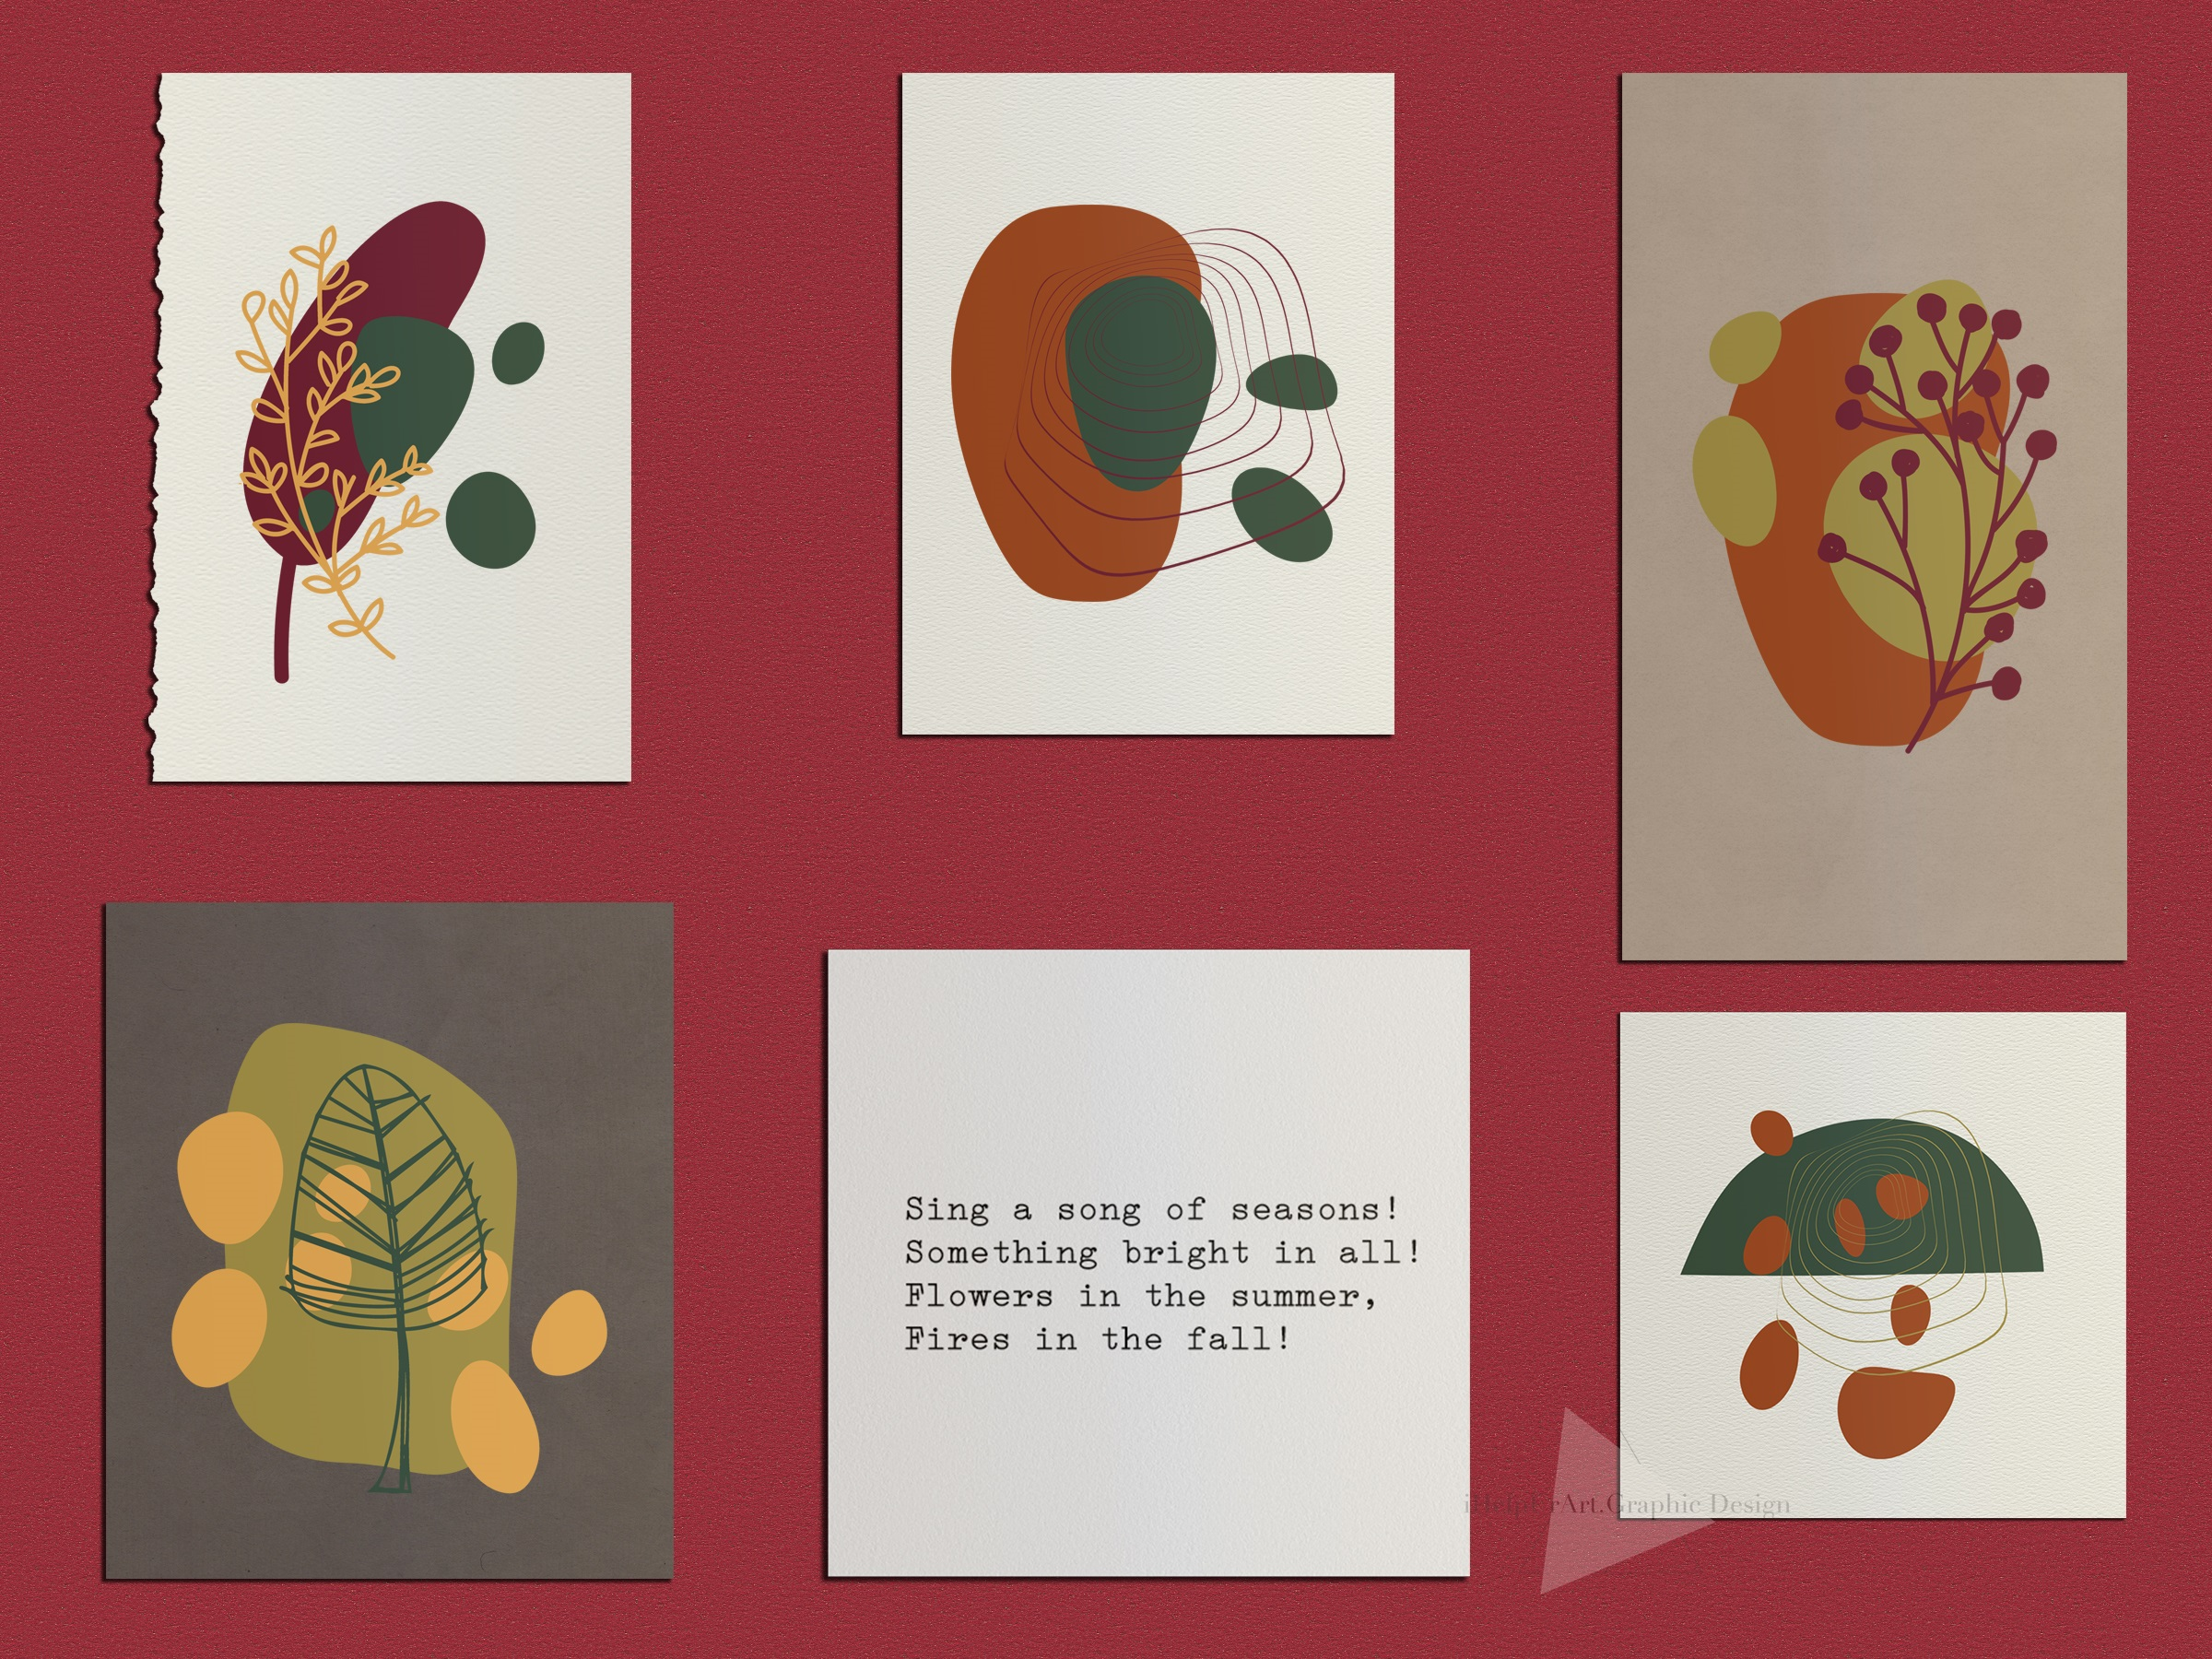 Modern Abstract Design Bundle - Autumn Clip Art example image 3